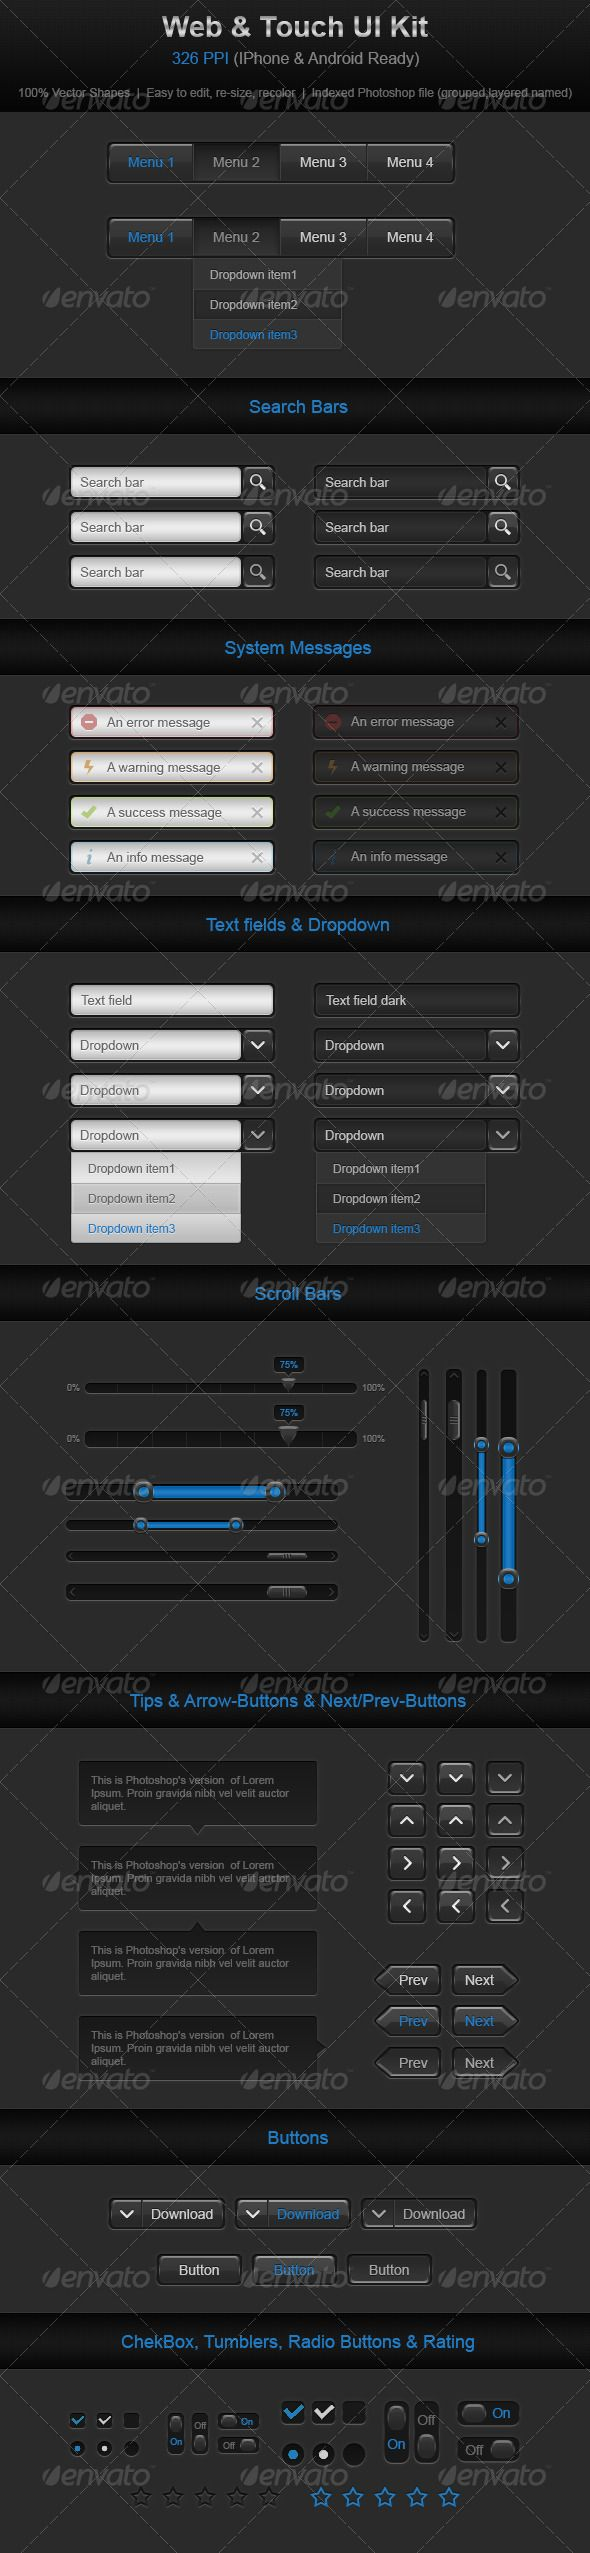 Web & Touch UI Kit - #User #Interfaces #Web Elements Download here:  https://graphicriver.net/item/web-touch-ui-kit/2431143?ref=alena994